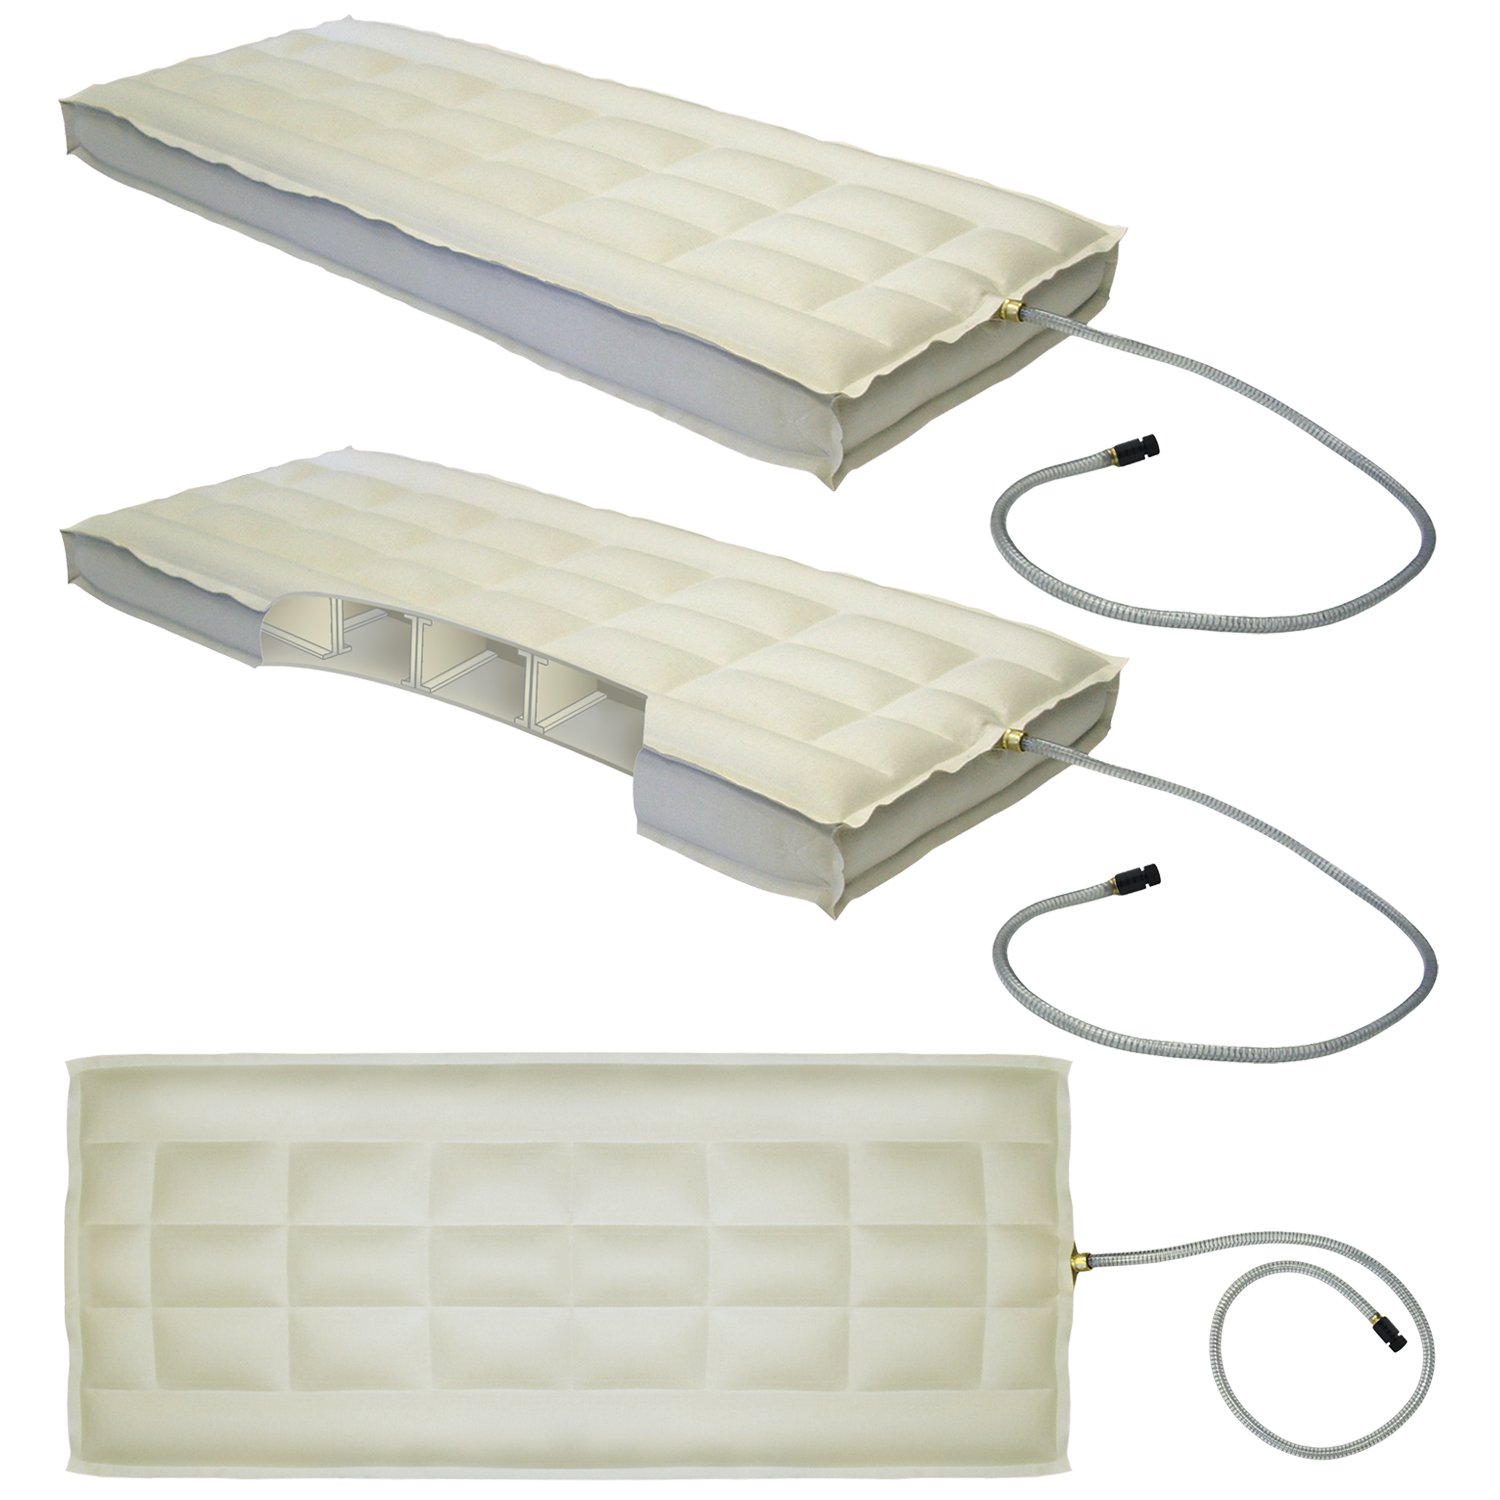 King Innomax Medallion Adjustable Sleep Air Bed Set with Foundation